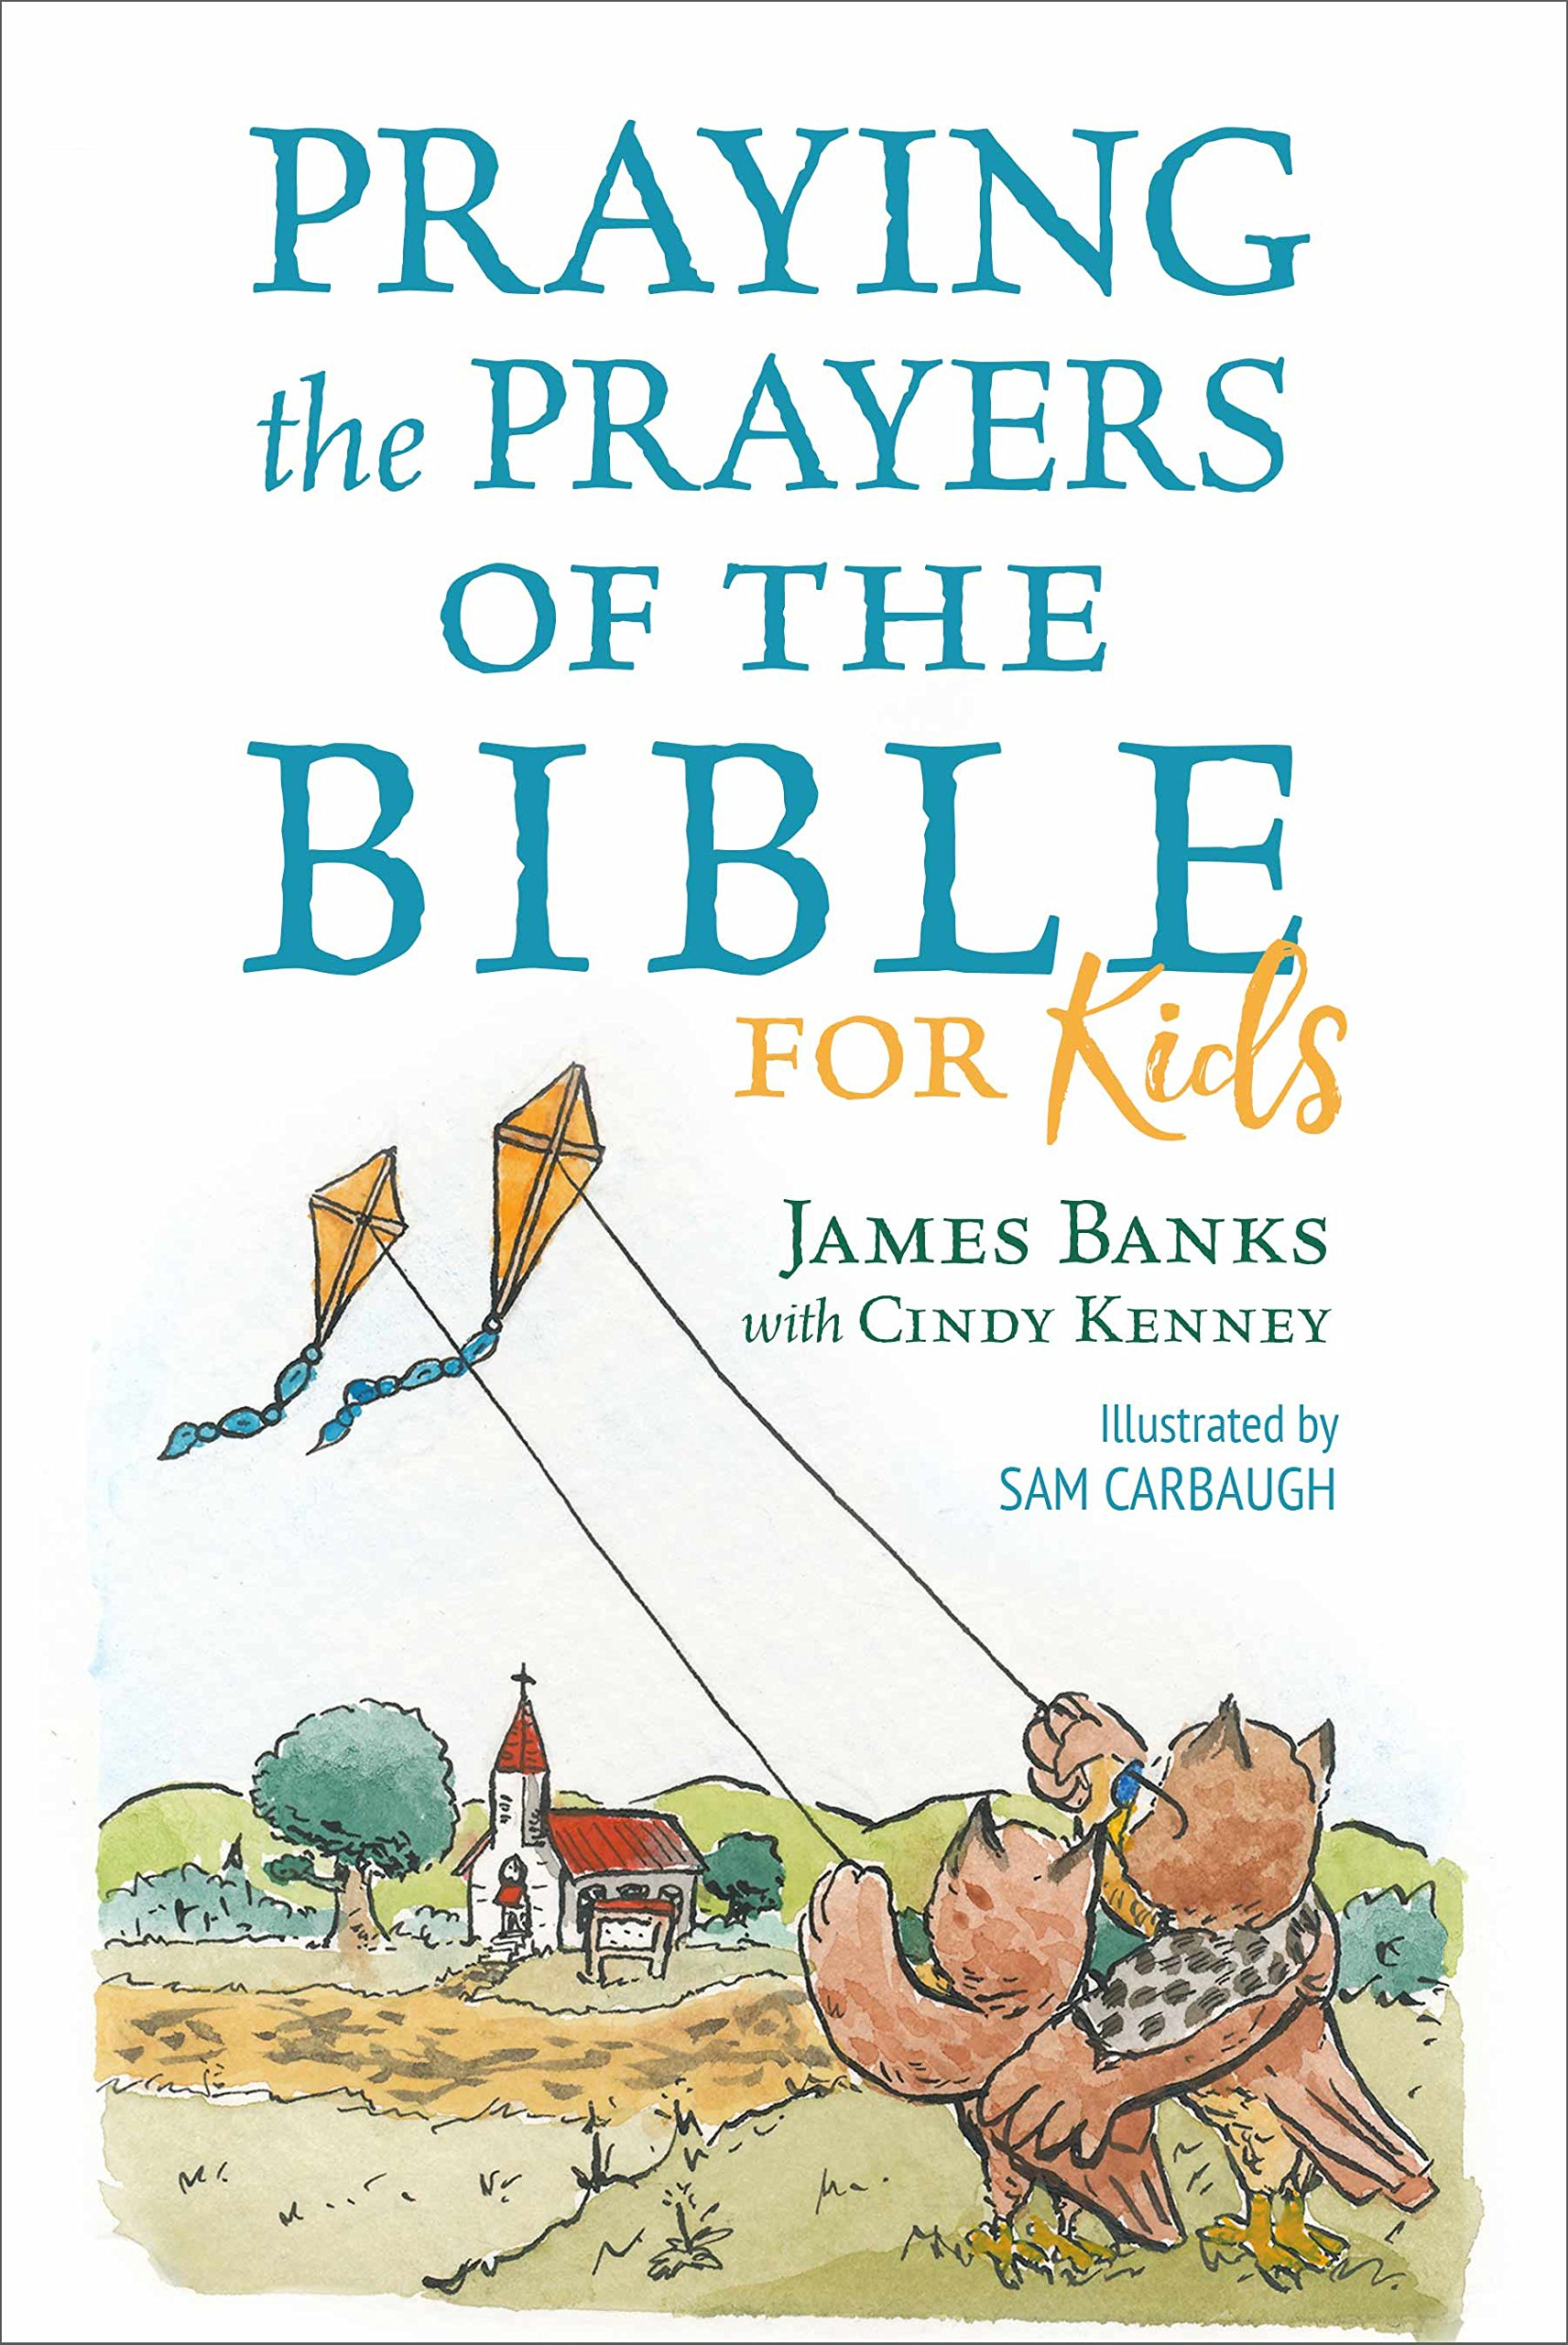 Praying the Prayers of the Bible for Kids (Our Daily Bread for Kids  Presents): James Banks, Cindy Kenney, Sam Carbaugh: 9781627078993:  Amazon.com: Books